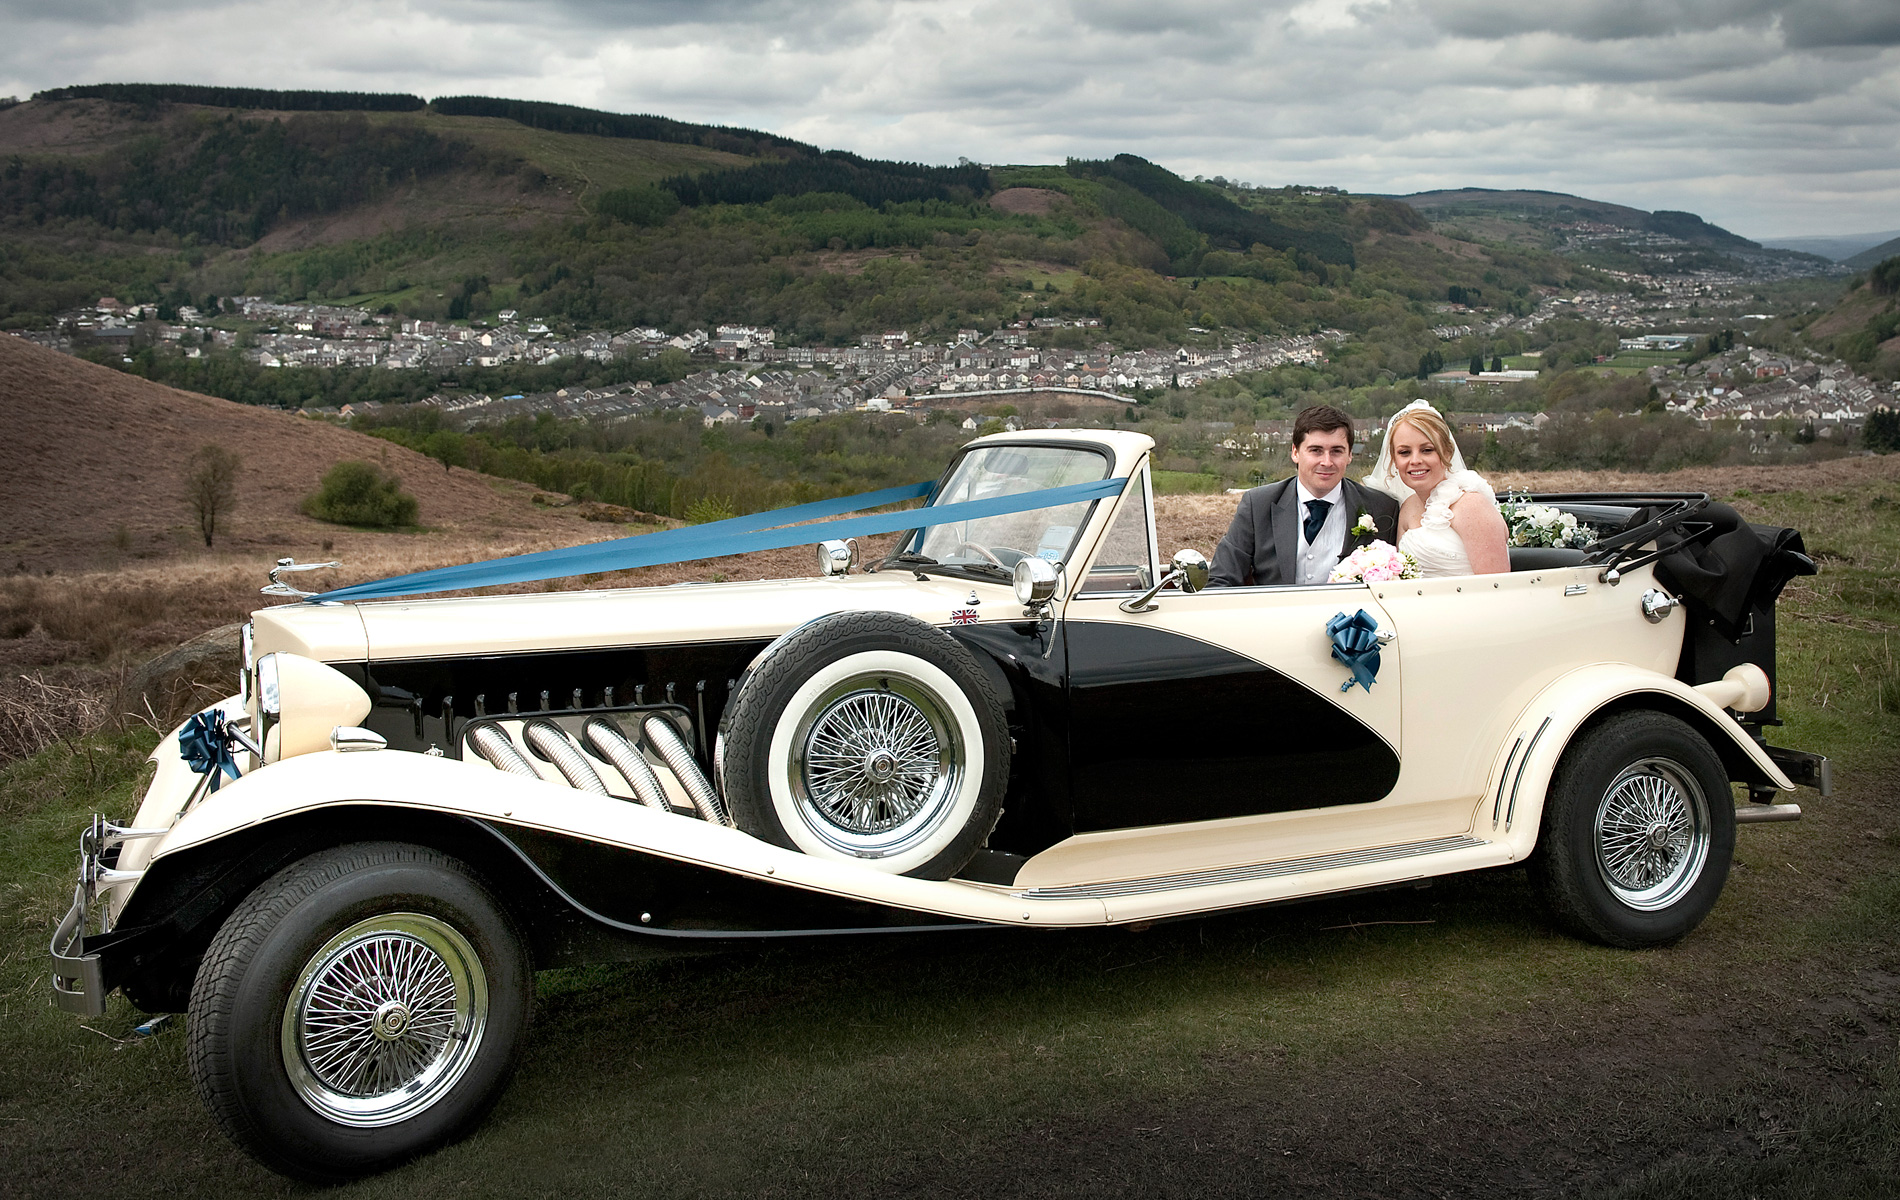 Wedding-car-above-Pontypridd-South-wales-wedding-photographer-AR-Jenkins-Llechwen-Hall-weddings